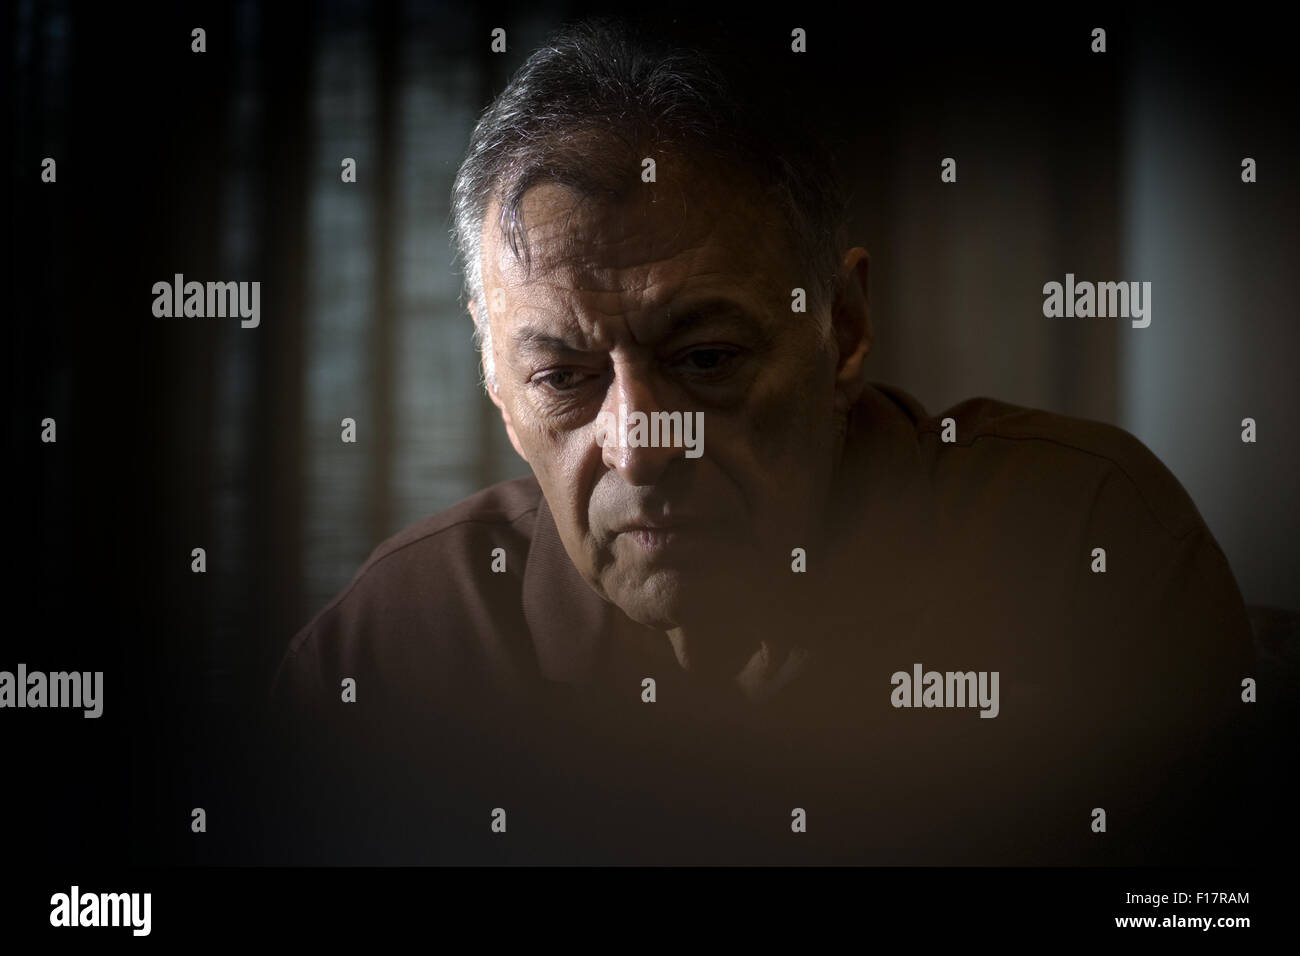 Portrait of Indian conductor Zubin Mehta currently the music director of the Israel Philharmonic Orchestra - Stock Image